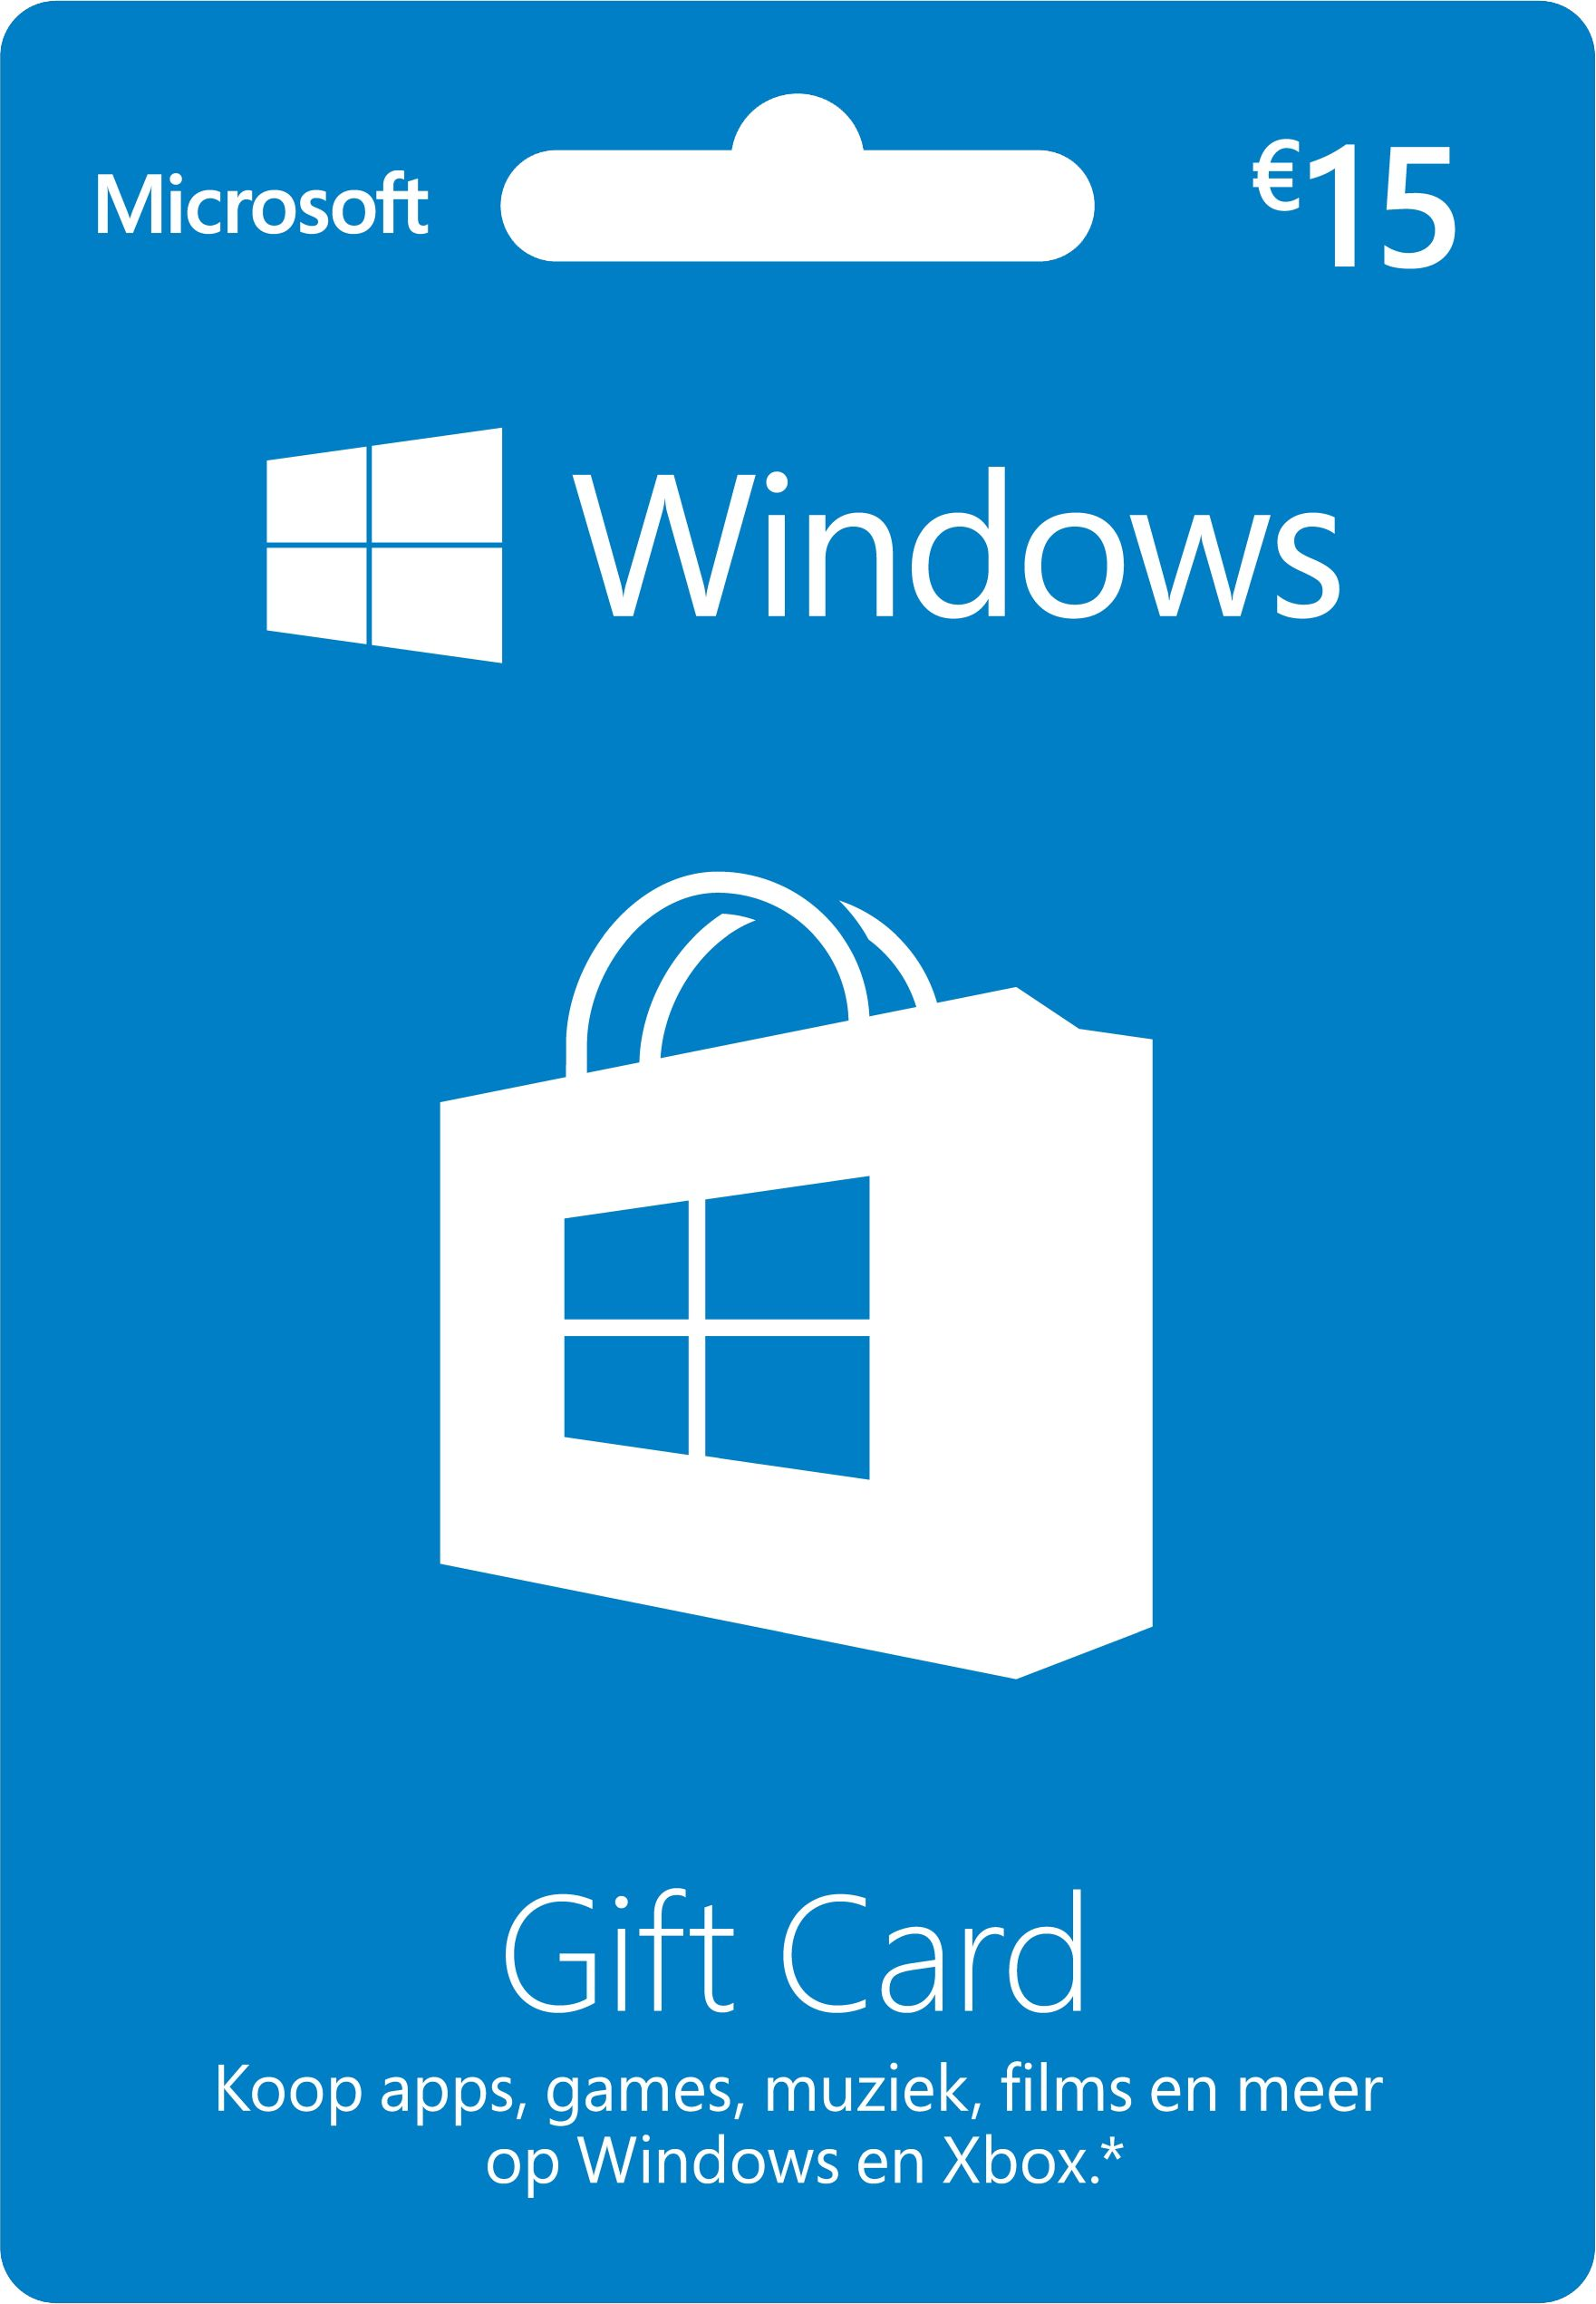 Windows Gift Card 15 euro